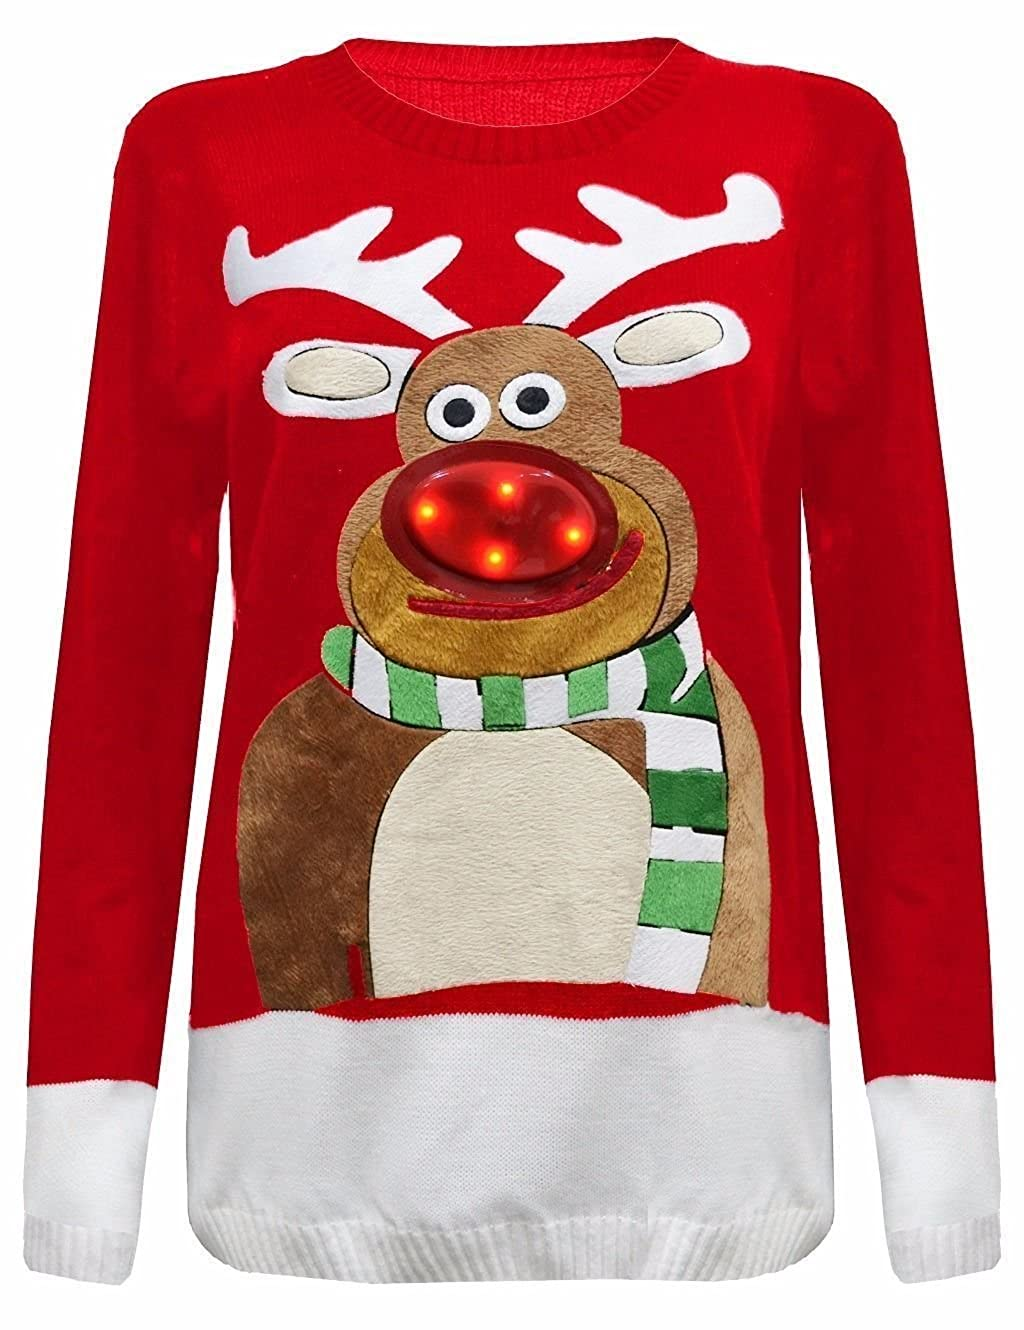 GUBA Big Girls' Men Rudolph Vint Light Up Jumper Xmas Sweater